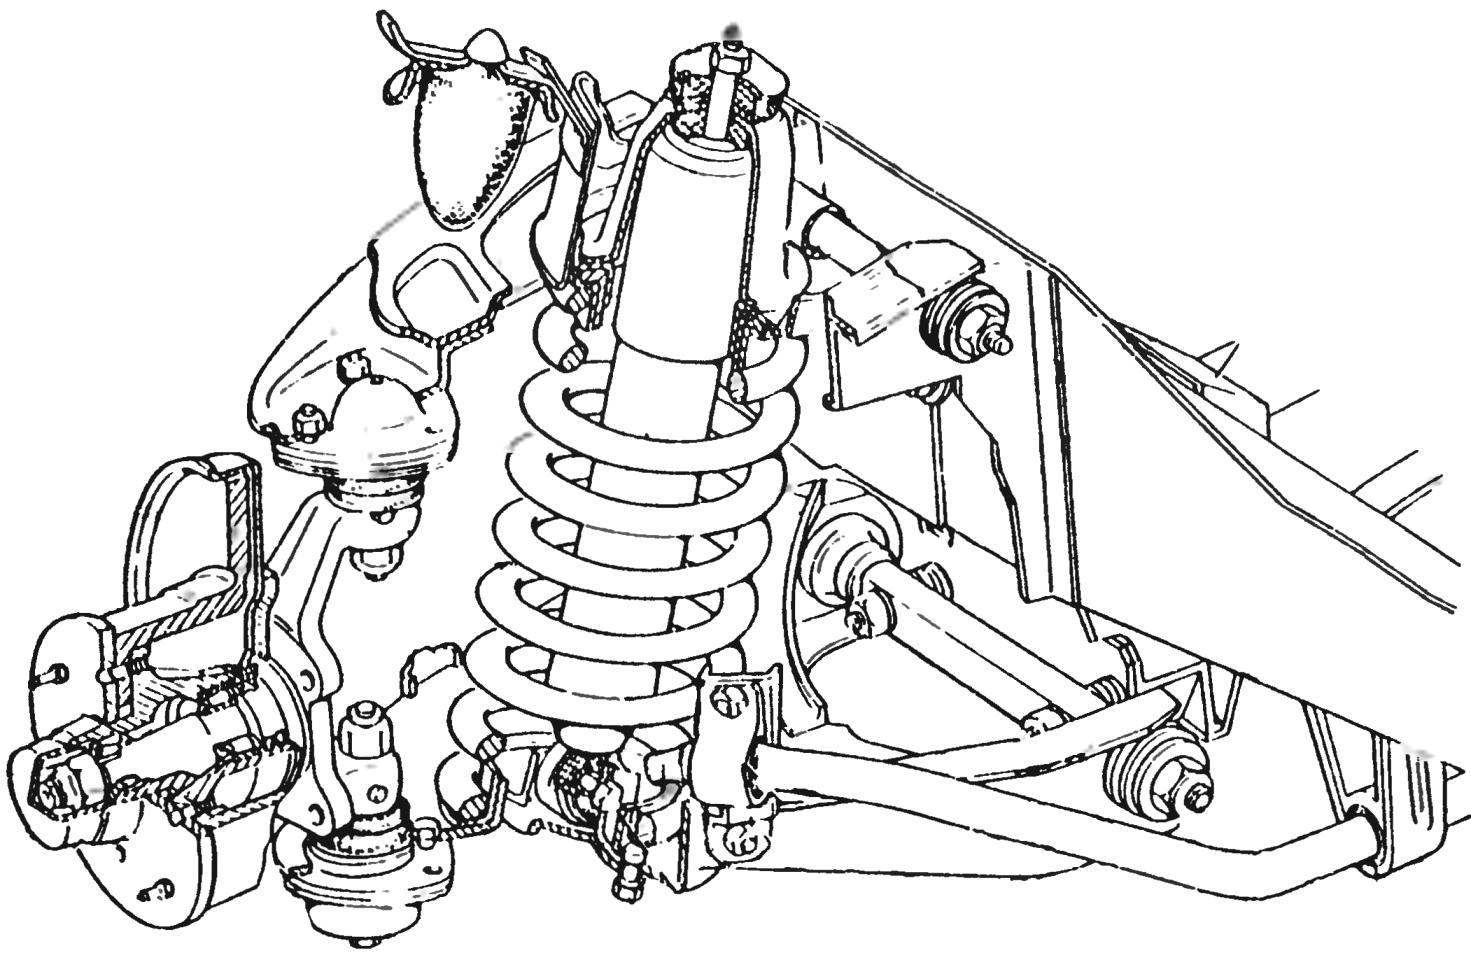 The front suspension of the car VAZ-2101 — independent, wishbone with coil springs, telescopic shock absorbers and stabilizer bar